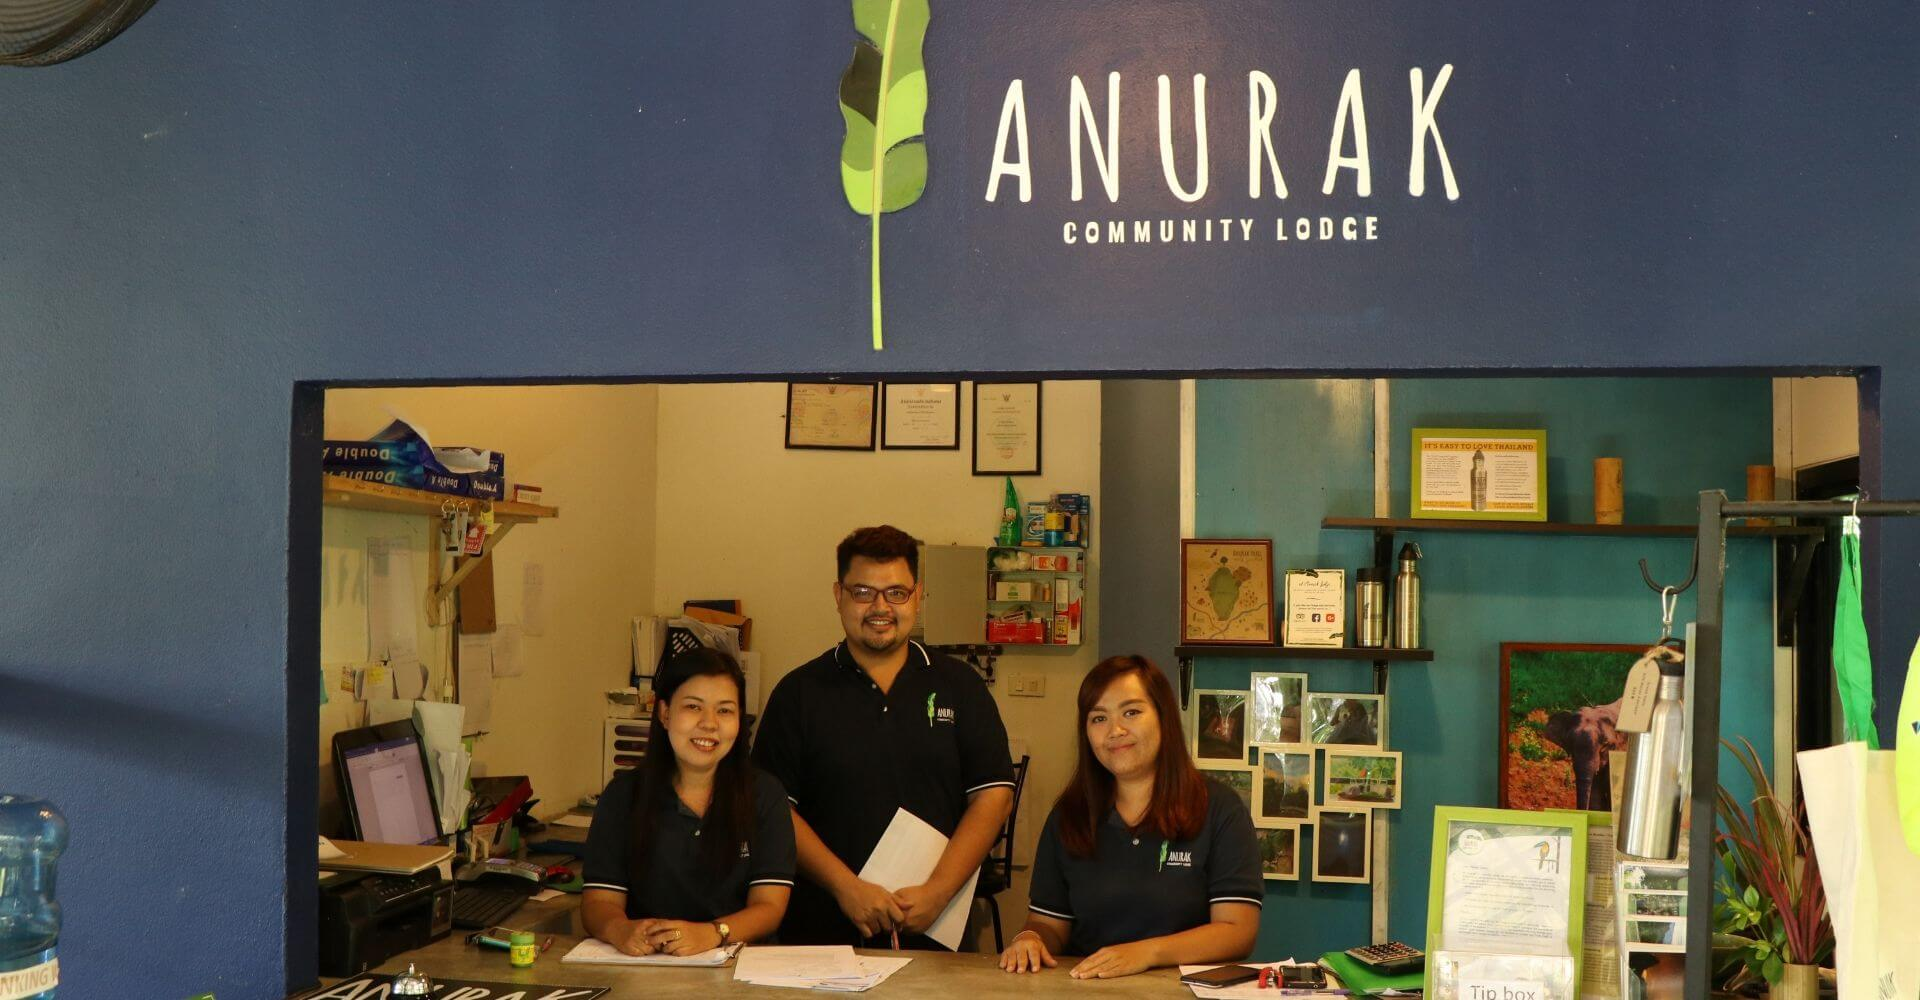 Anurak Lodge Reception